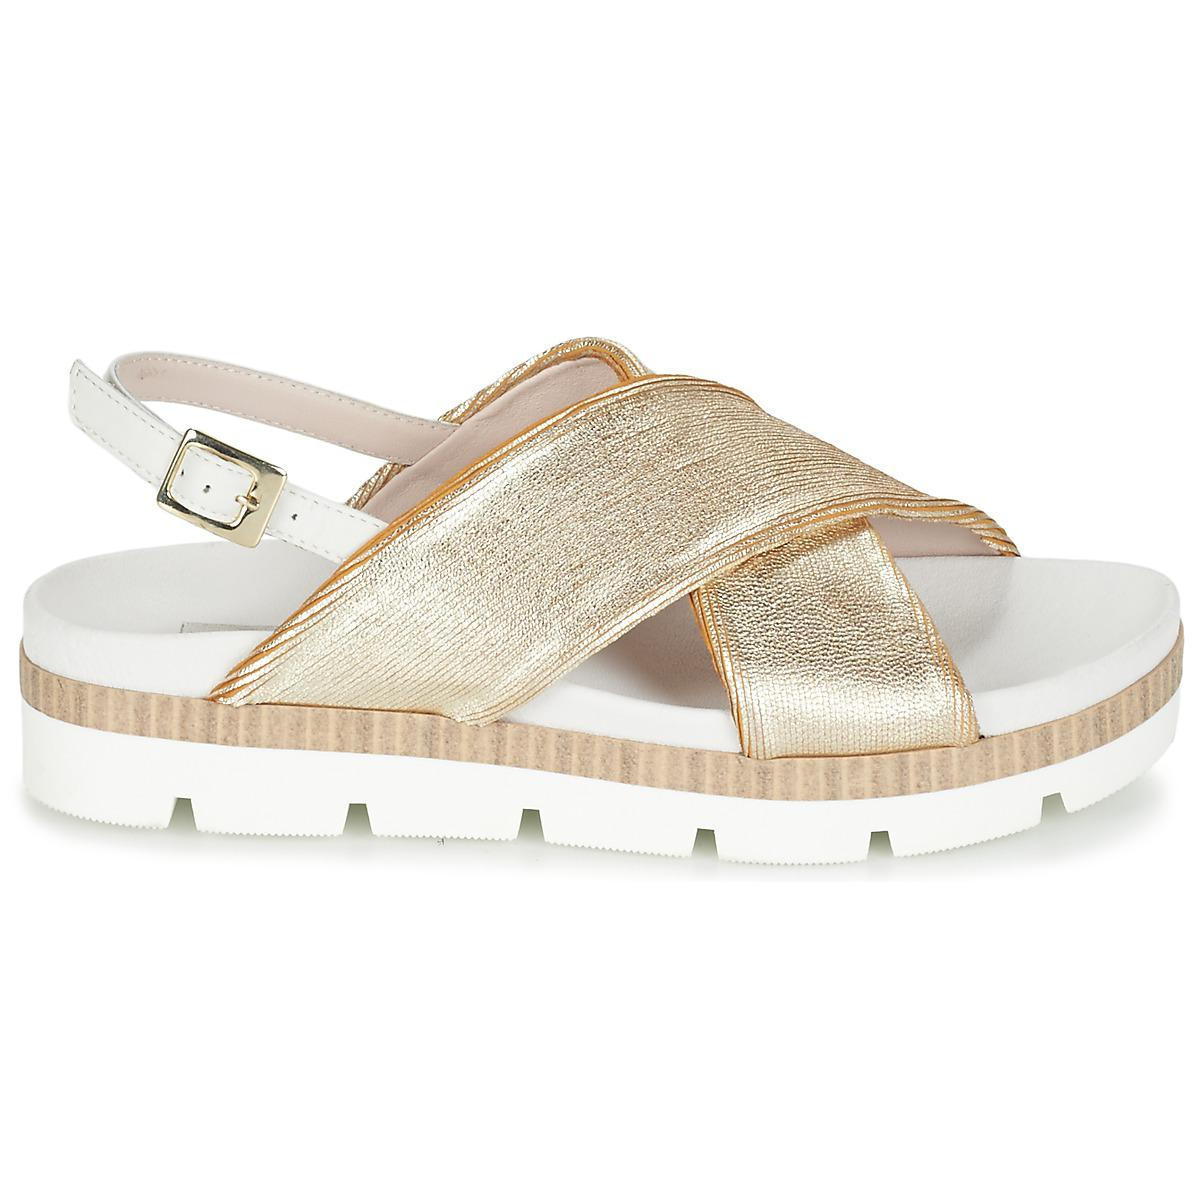 Tosca Blu DRESC women's Sandals in Very Cheap Price Sast Sale Online Free Shipping Lowest Price Free Shipping Geniue Stockist Clearance Purchase FNjDs0o